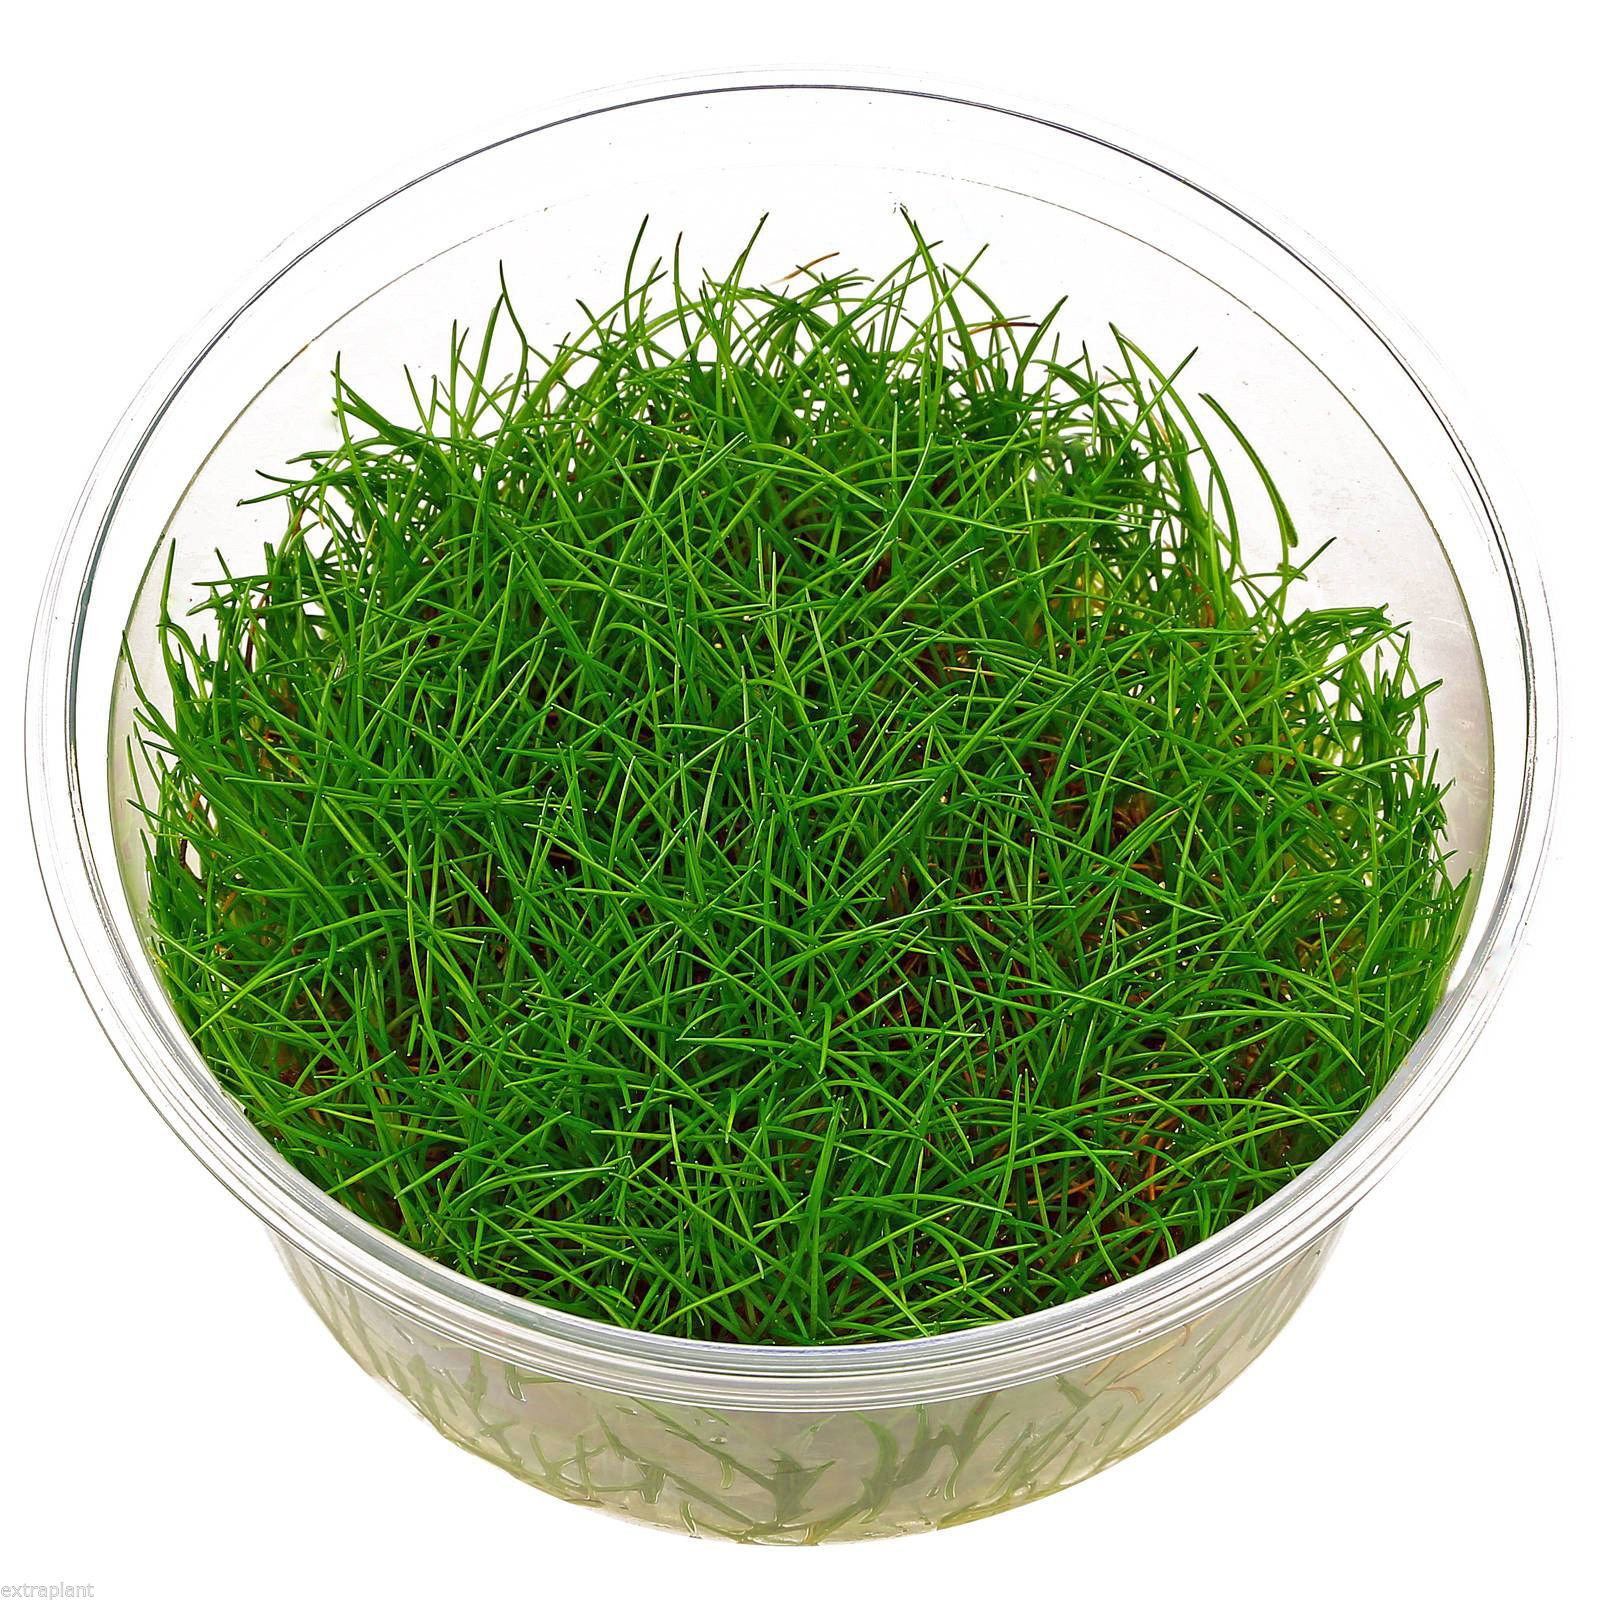 Eleocharis sp. Mini in Tissue Culture Dwarf Hairgrass Mini Live Aquarium Plants